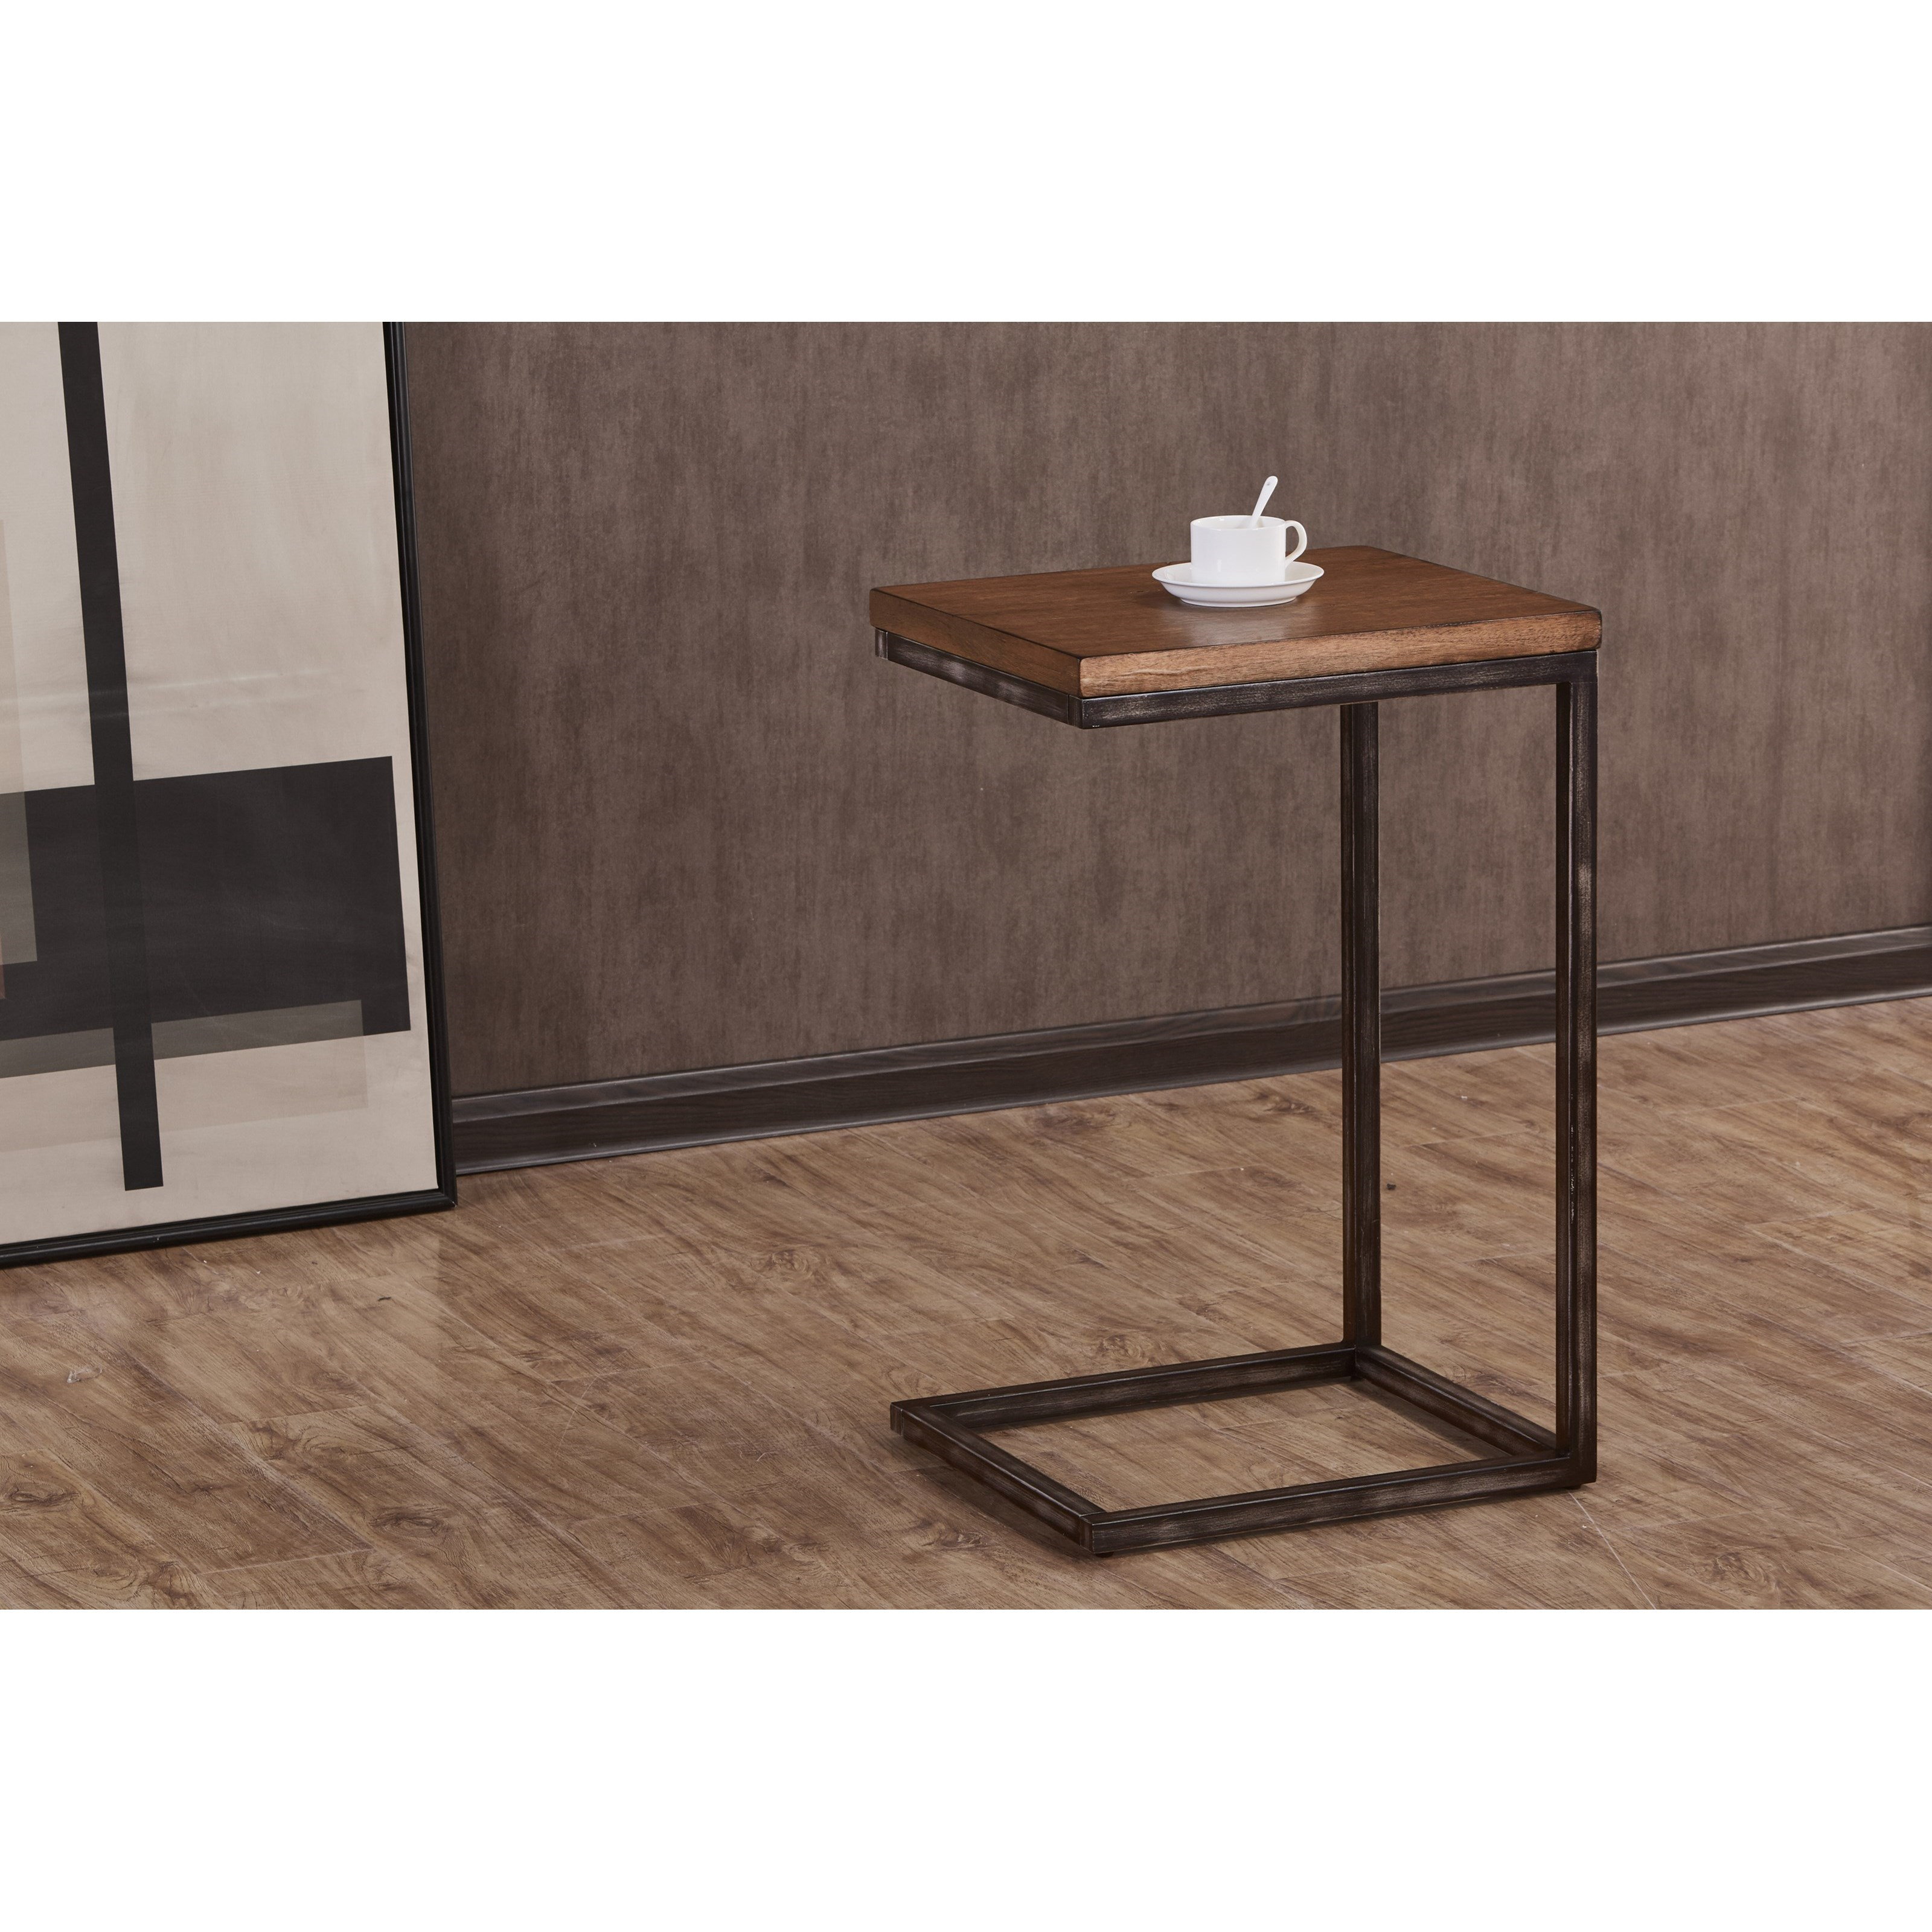 7326 Chairside Table by United Furniture Industries at Bullard Furniture